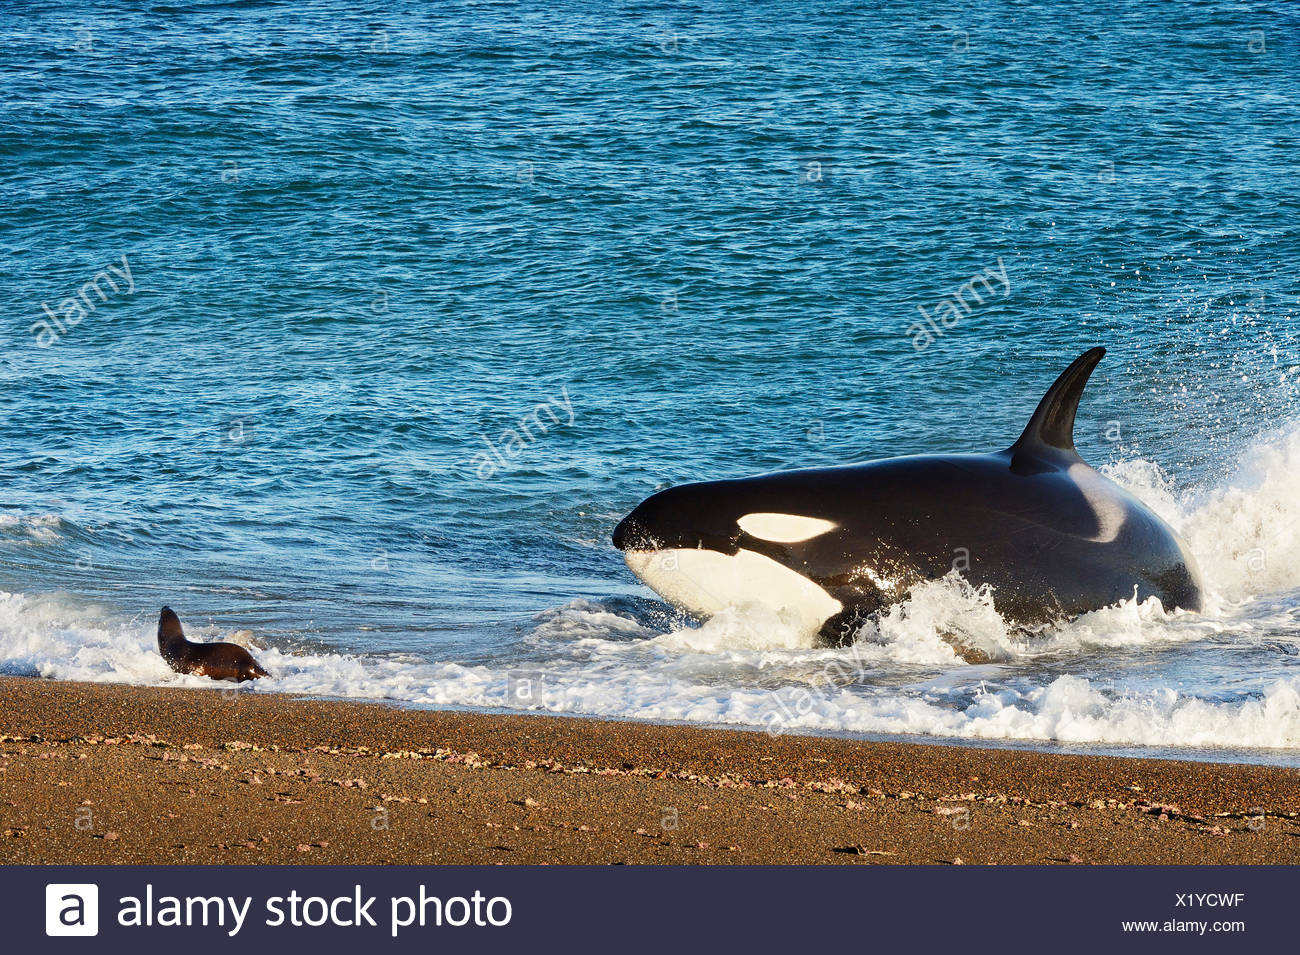 Orcas predating on fur seal pups at Punta Norte in Argentina (Patagonia). The behavior is unique the the orcas that live in this region. - Stock Image